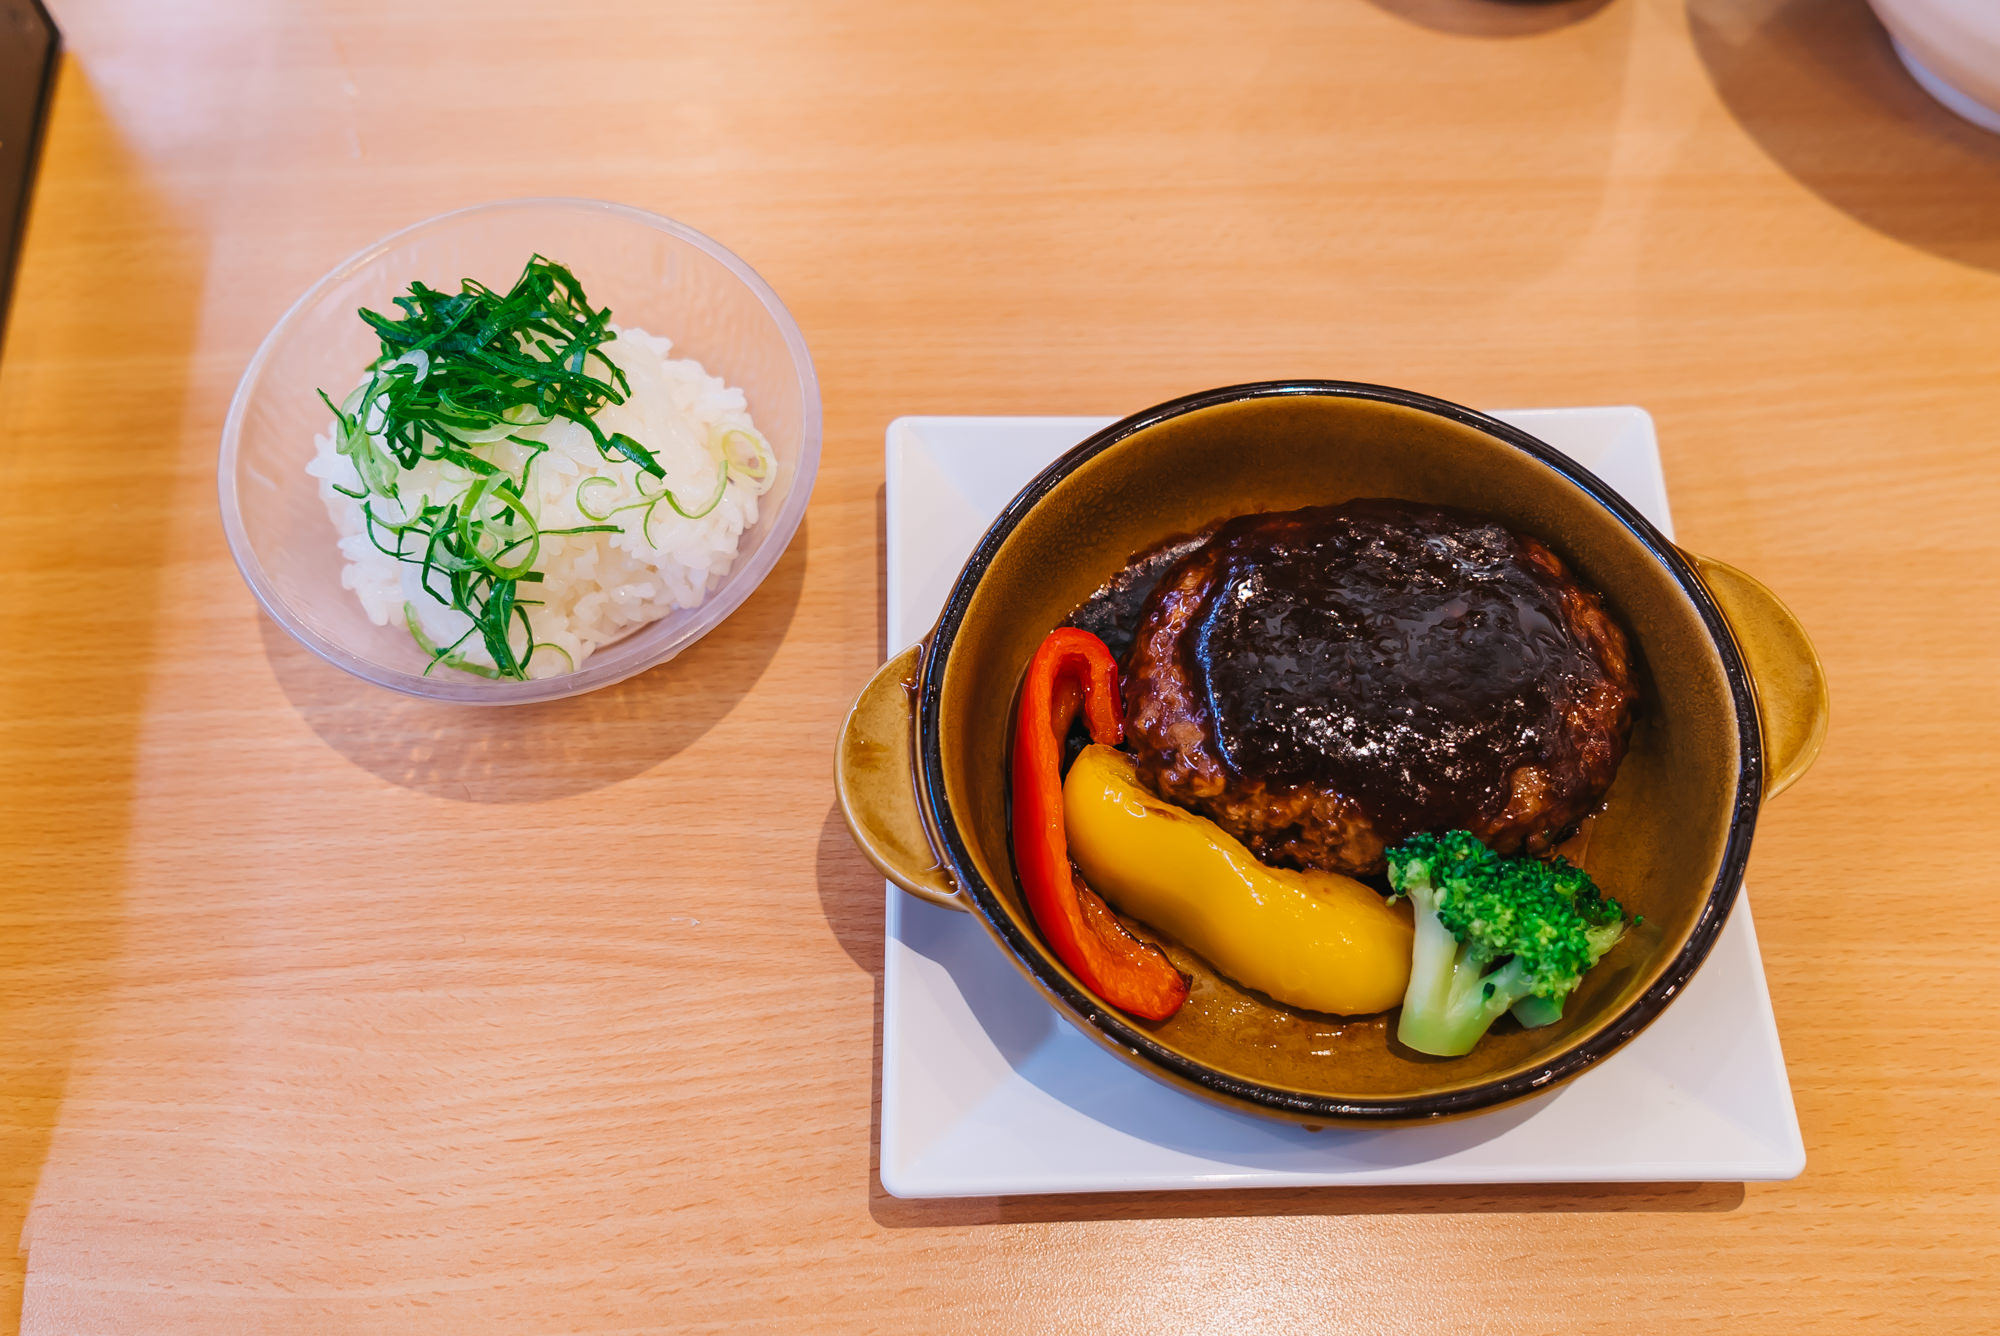 Japanese Hamburger Steak with Veggies